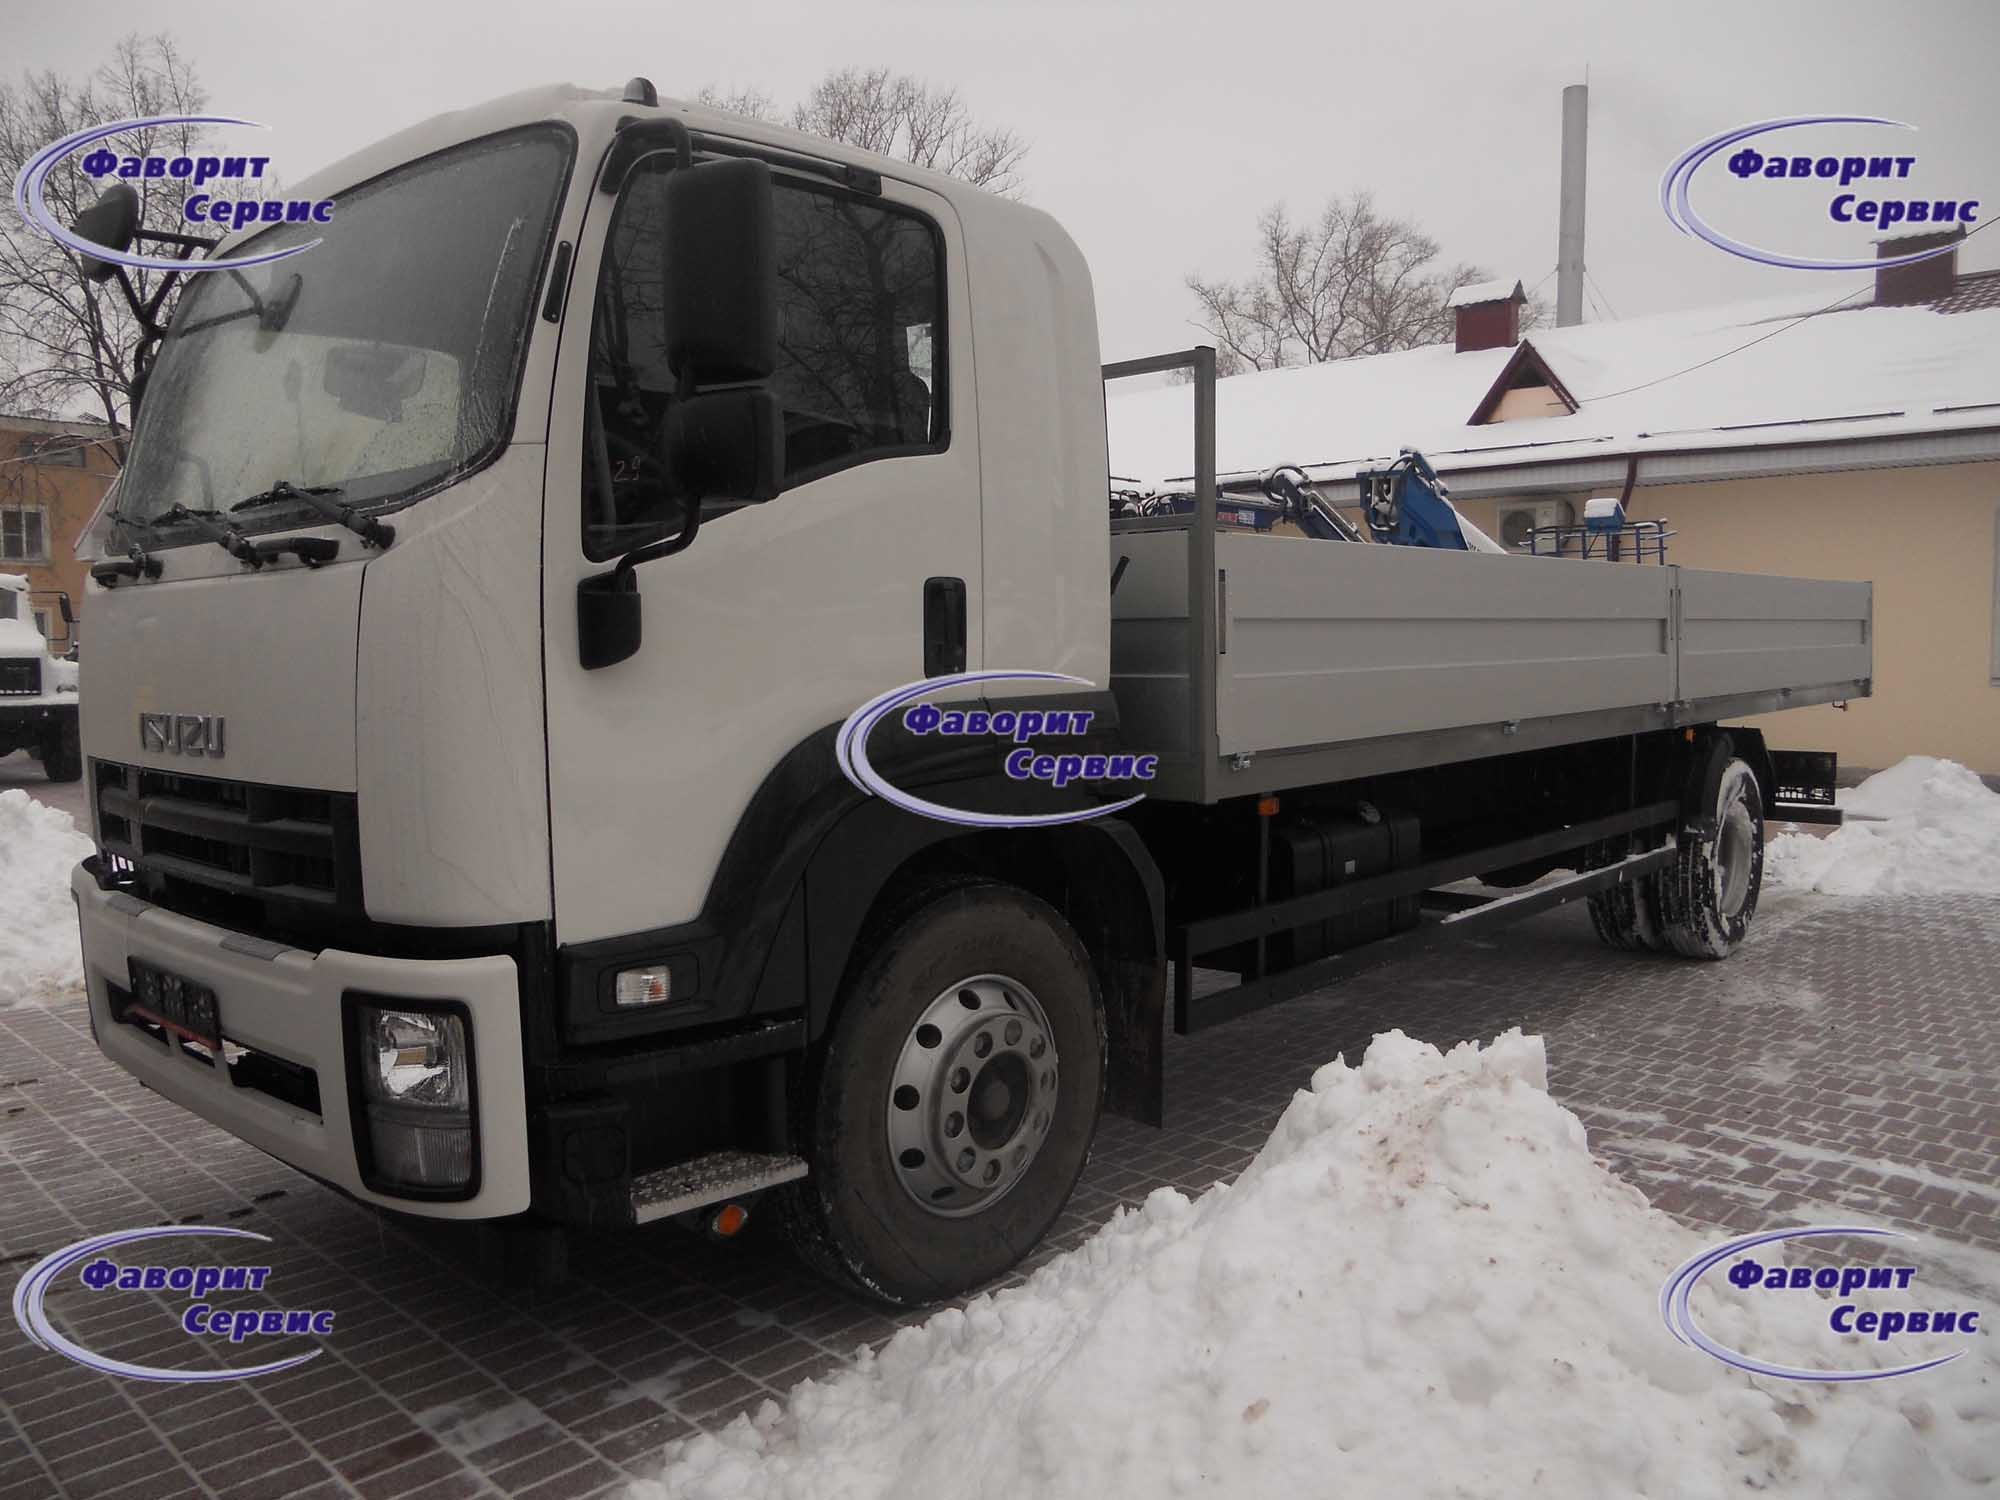 Бортовой ISUZU FVR34 FORWARD_18.0 | Фаворит Сервис